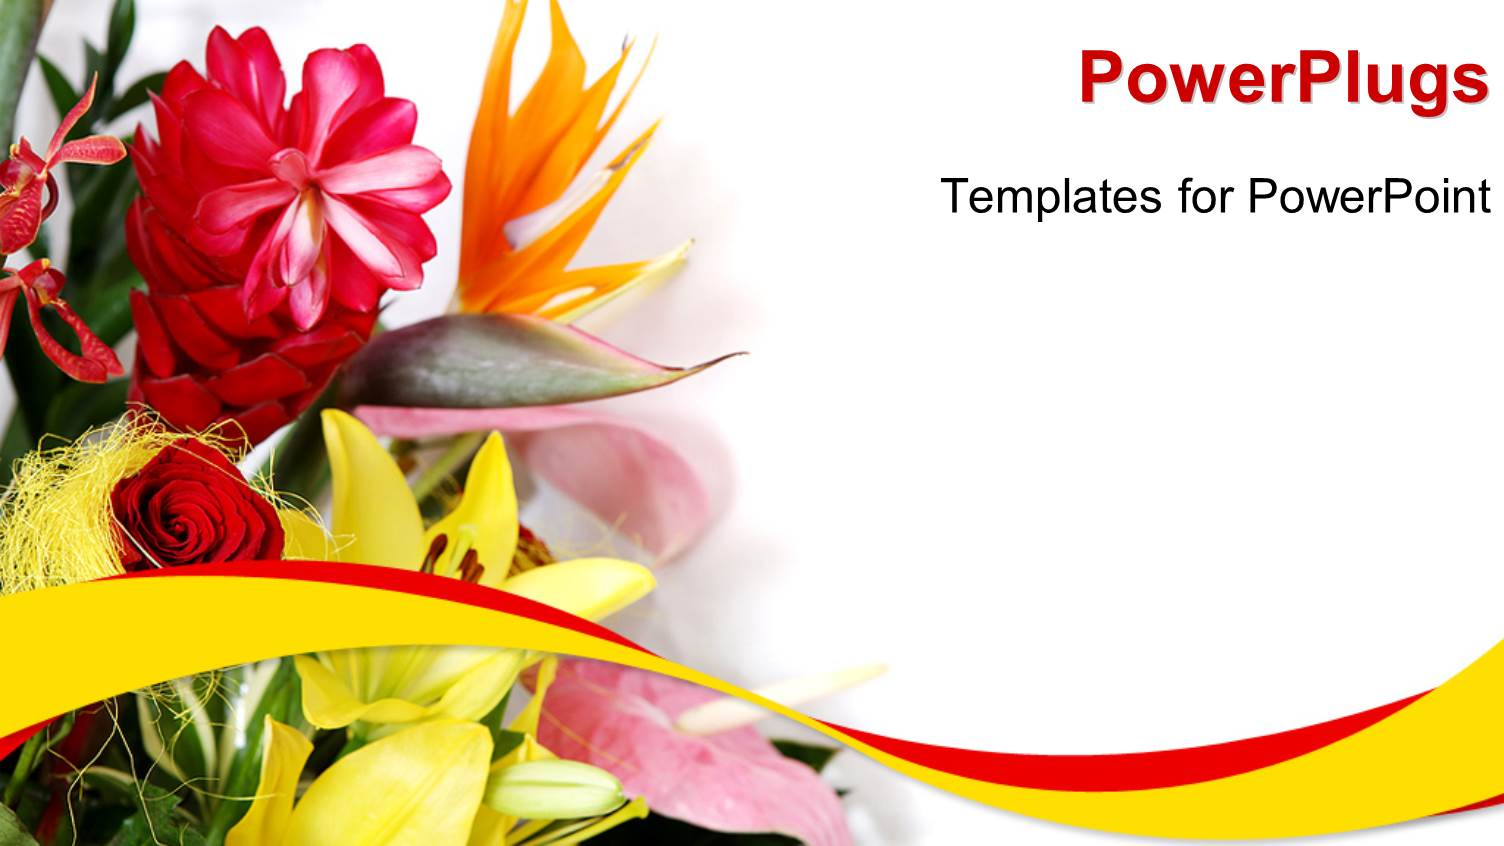 Blank background for greeting card backgrounds for powerpoint.